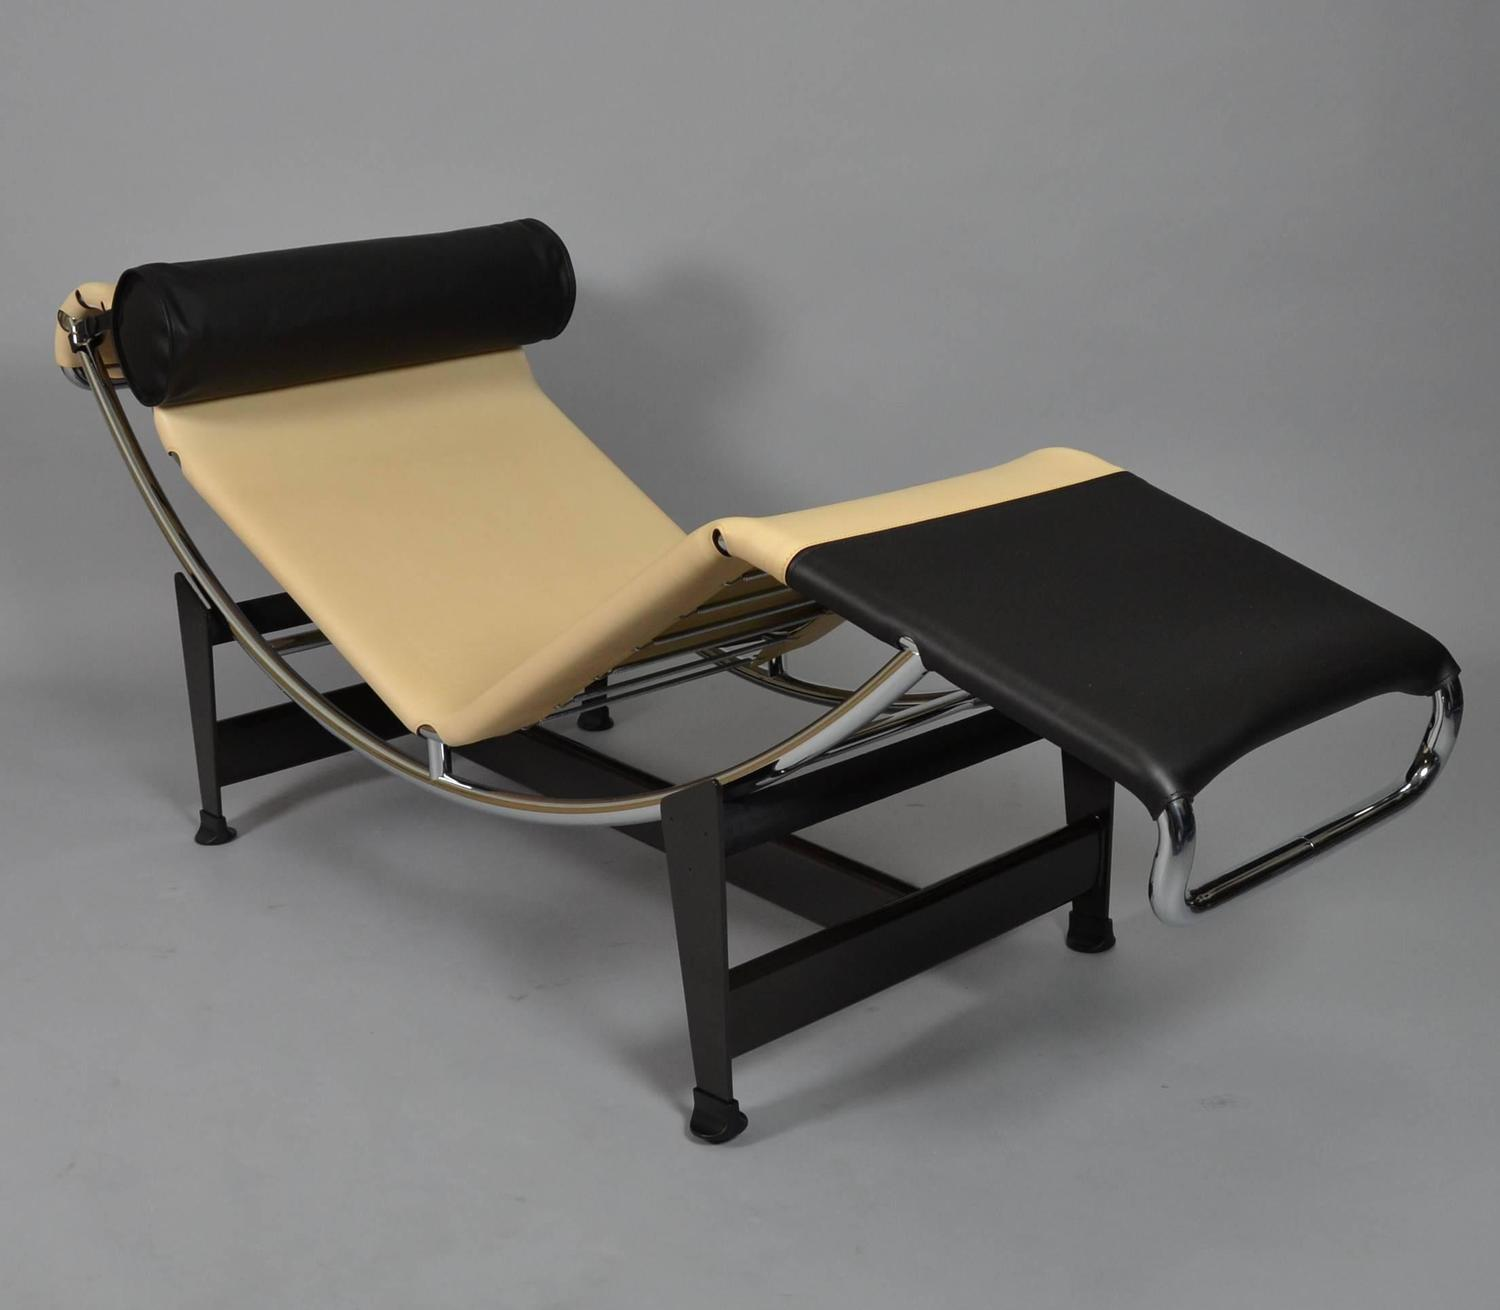 Lc4 chaise longue limited edition by louis vuitton and for Chaise longue lc4